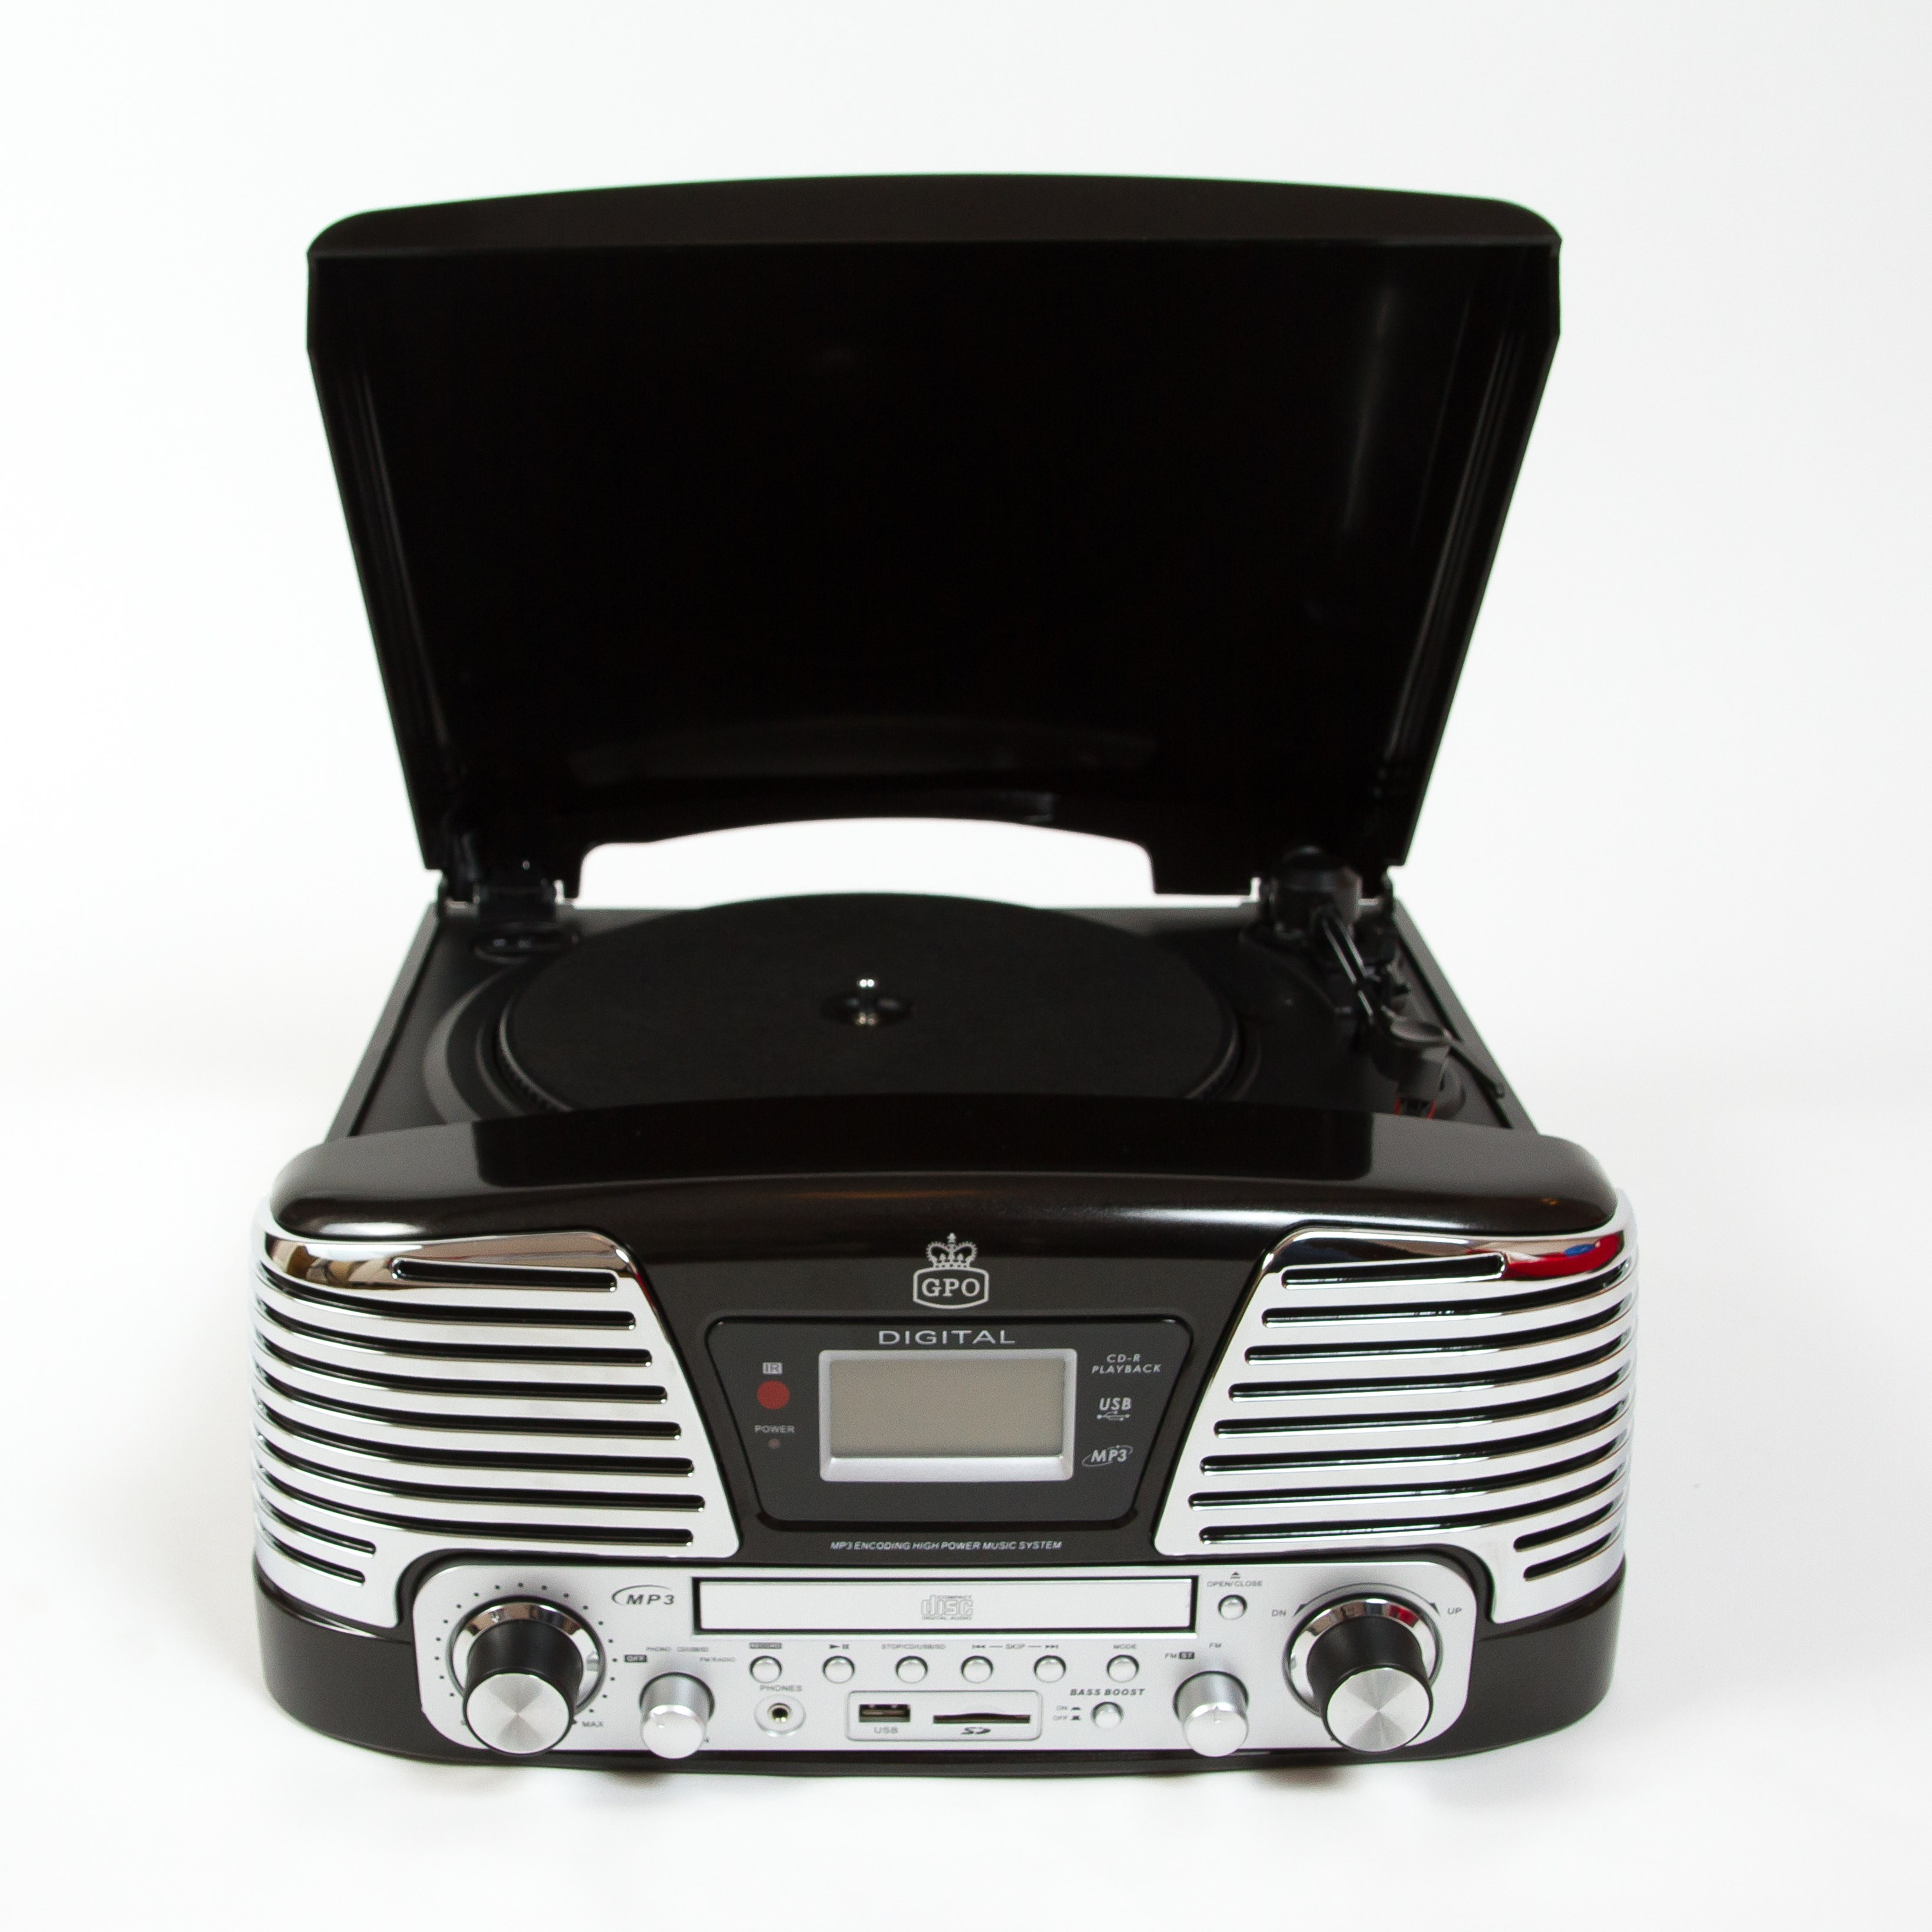 GPO Memphis Black USB Turntable with CD Player & Radio (online only) - 2